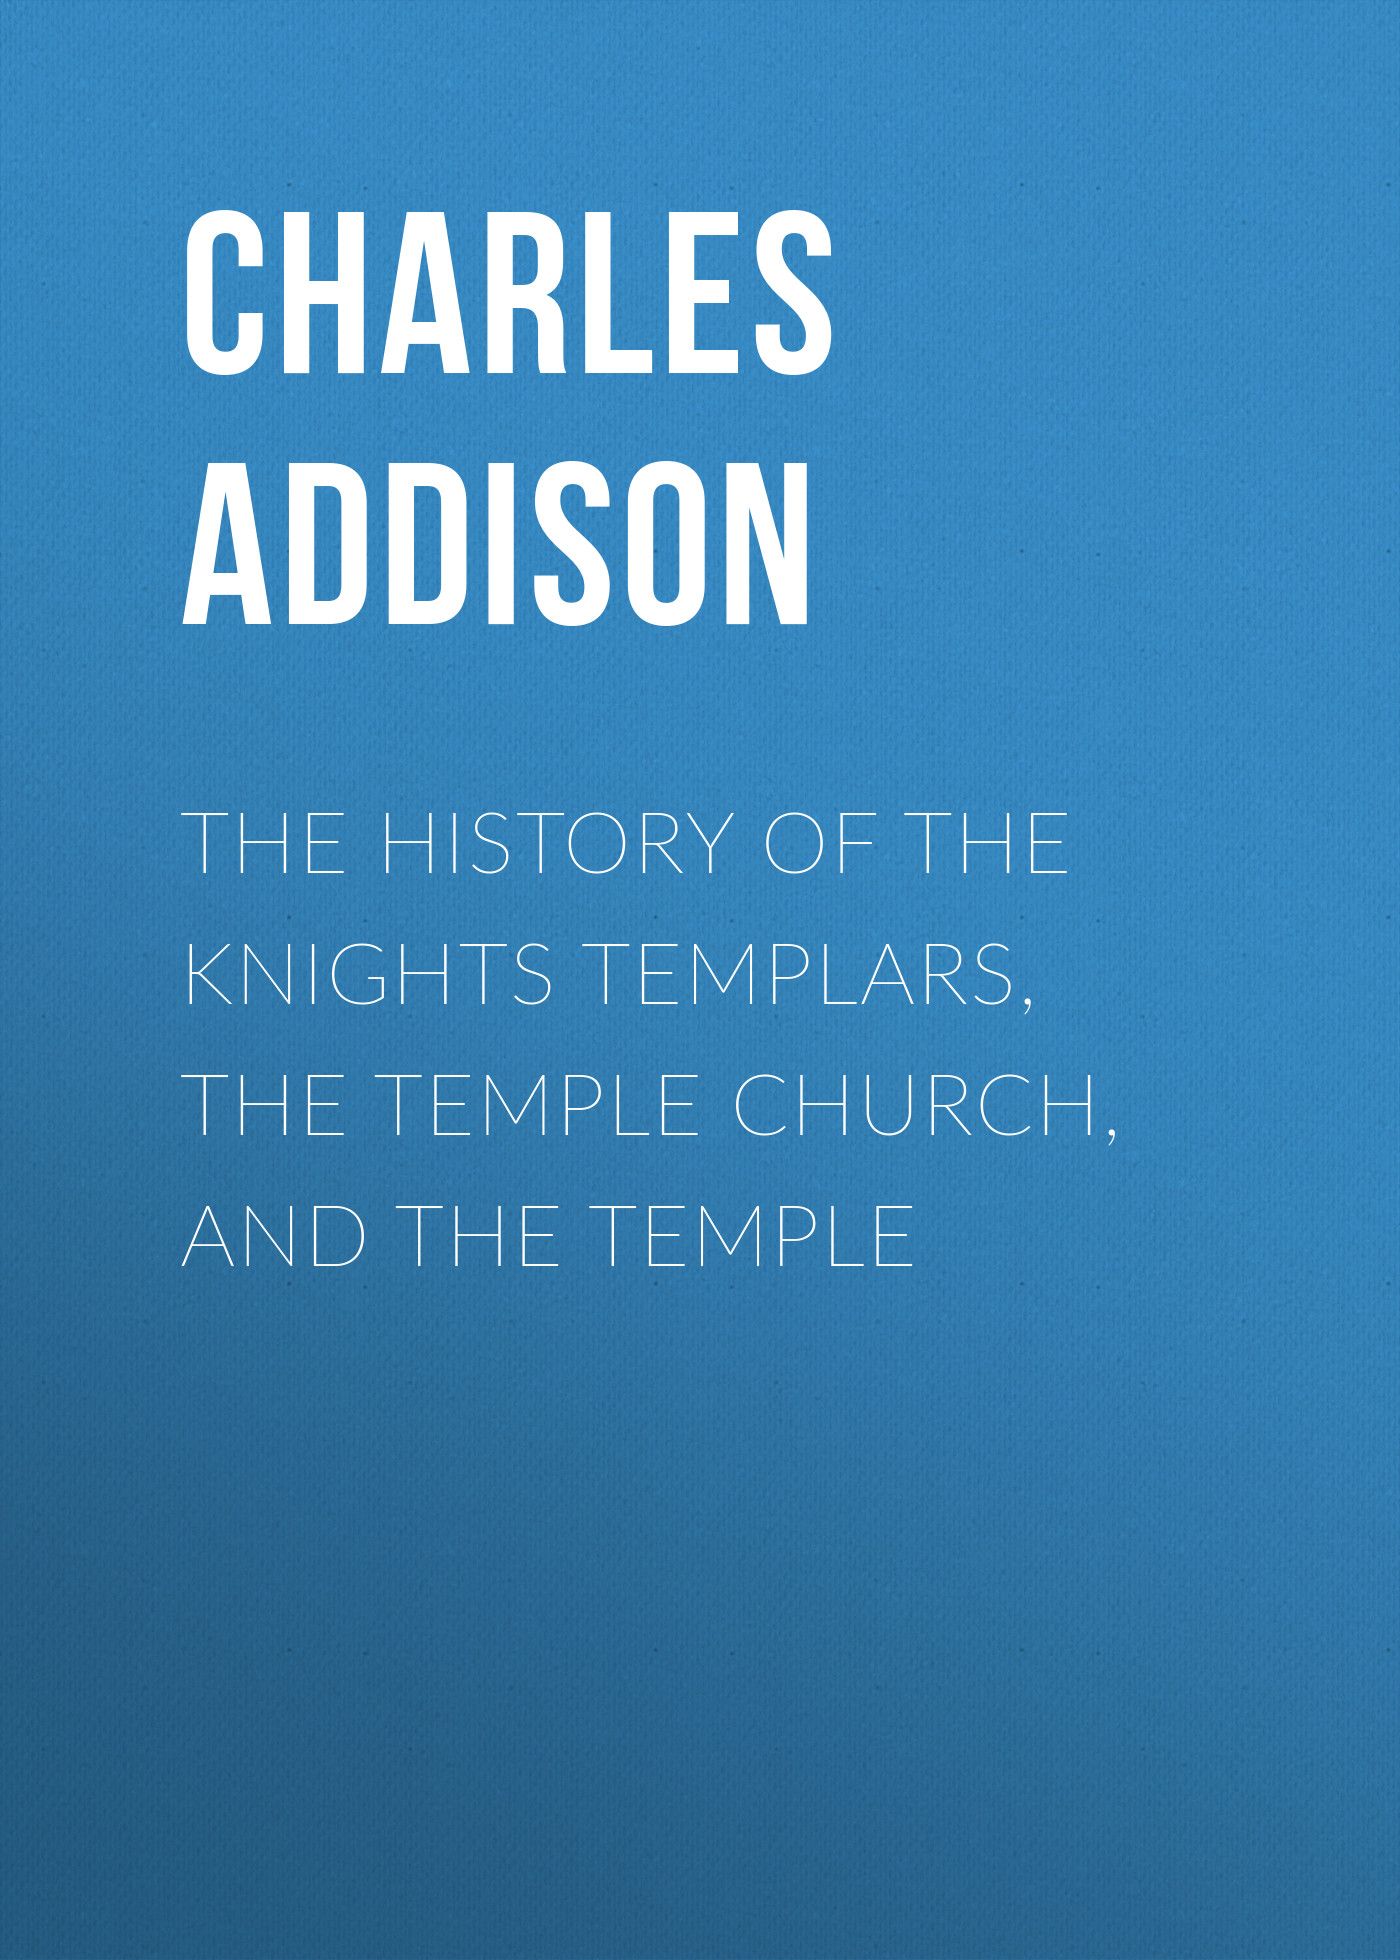 Addison Charles Greenstreet The History of the Knights Templars, the Temple Church, and the Temple игра lara croft and the temple of osiris playstation 4